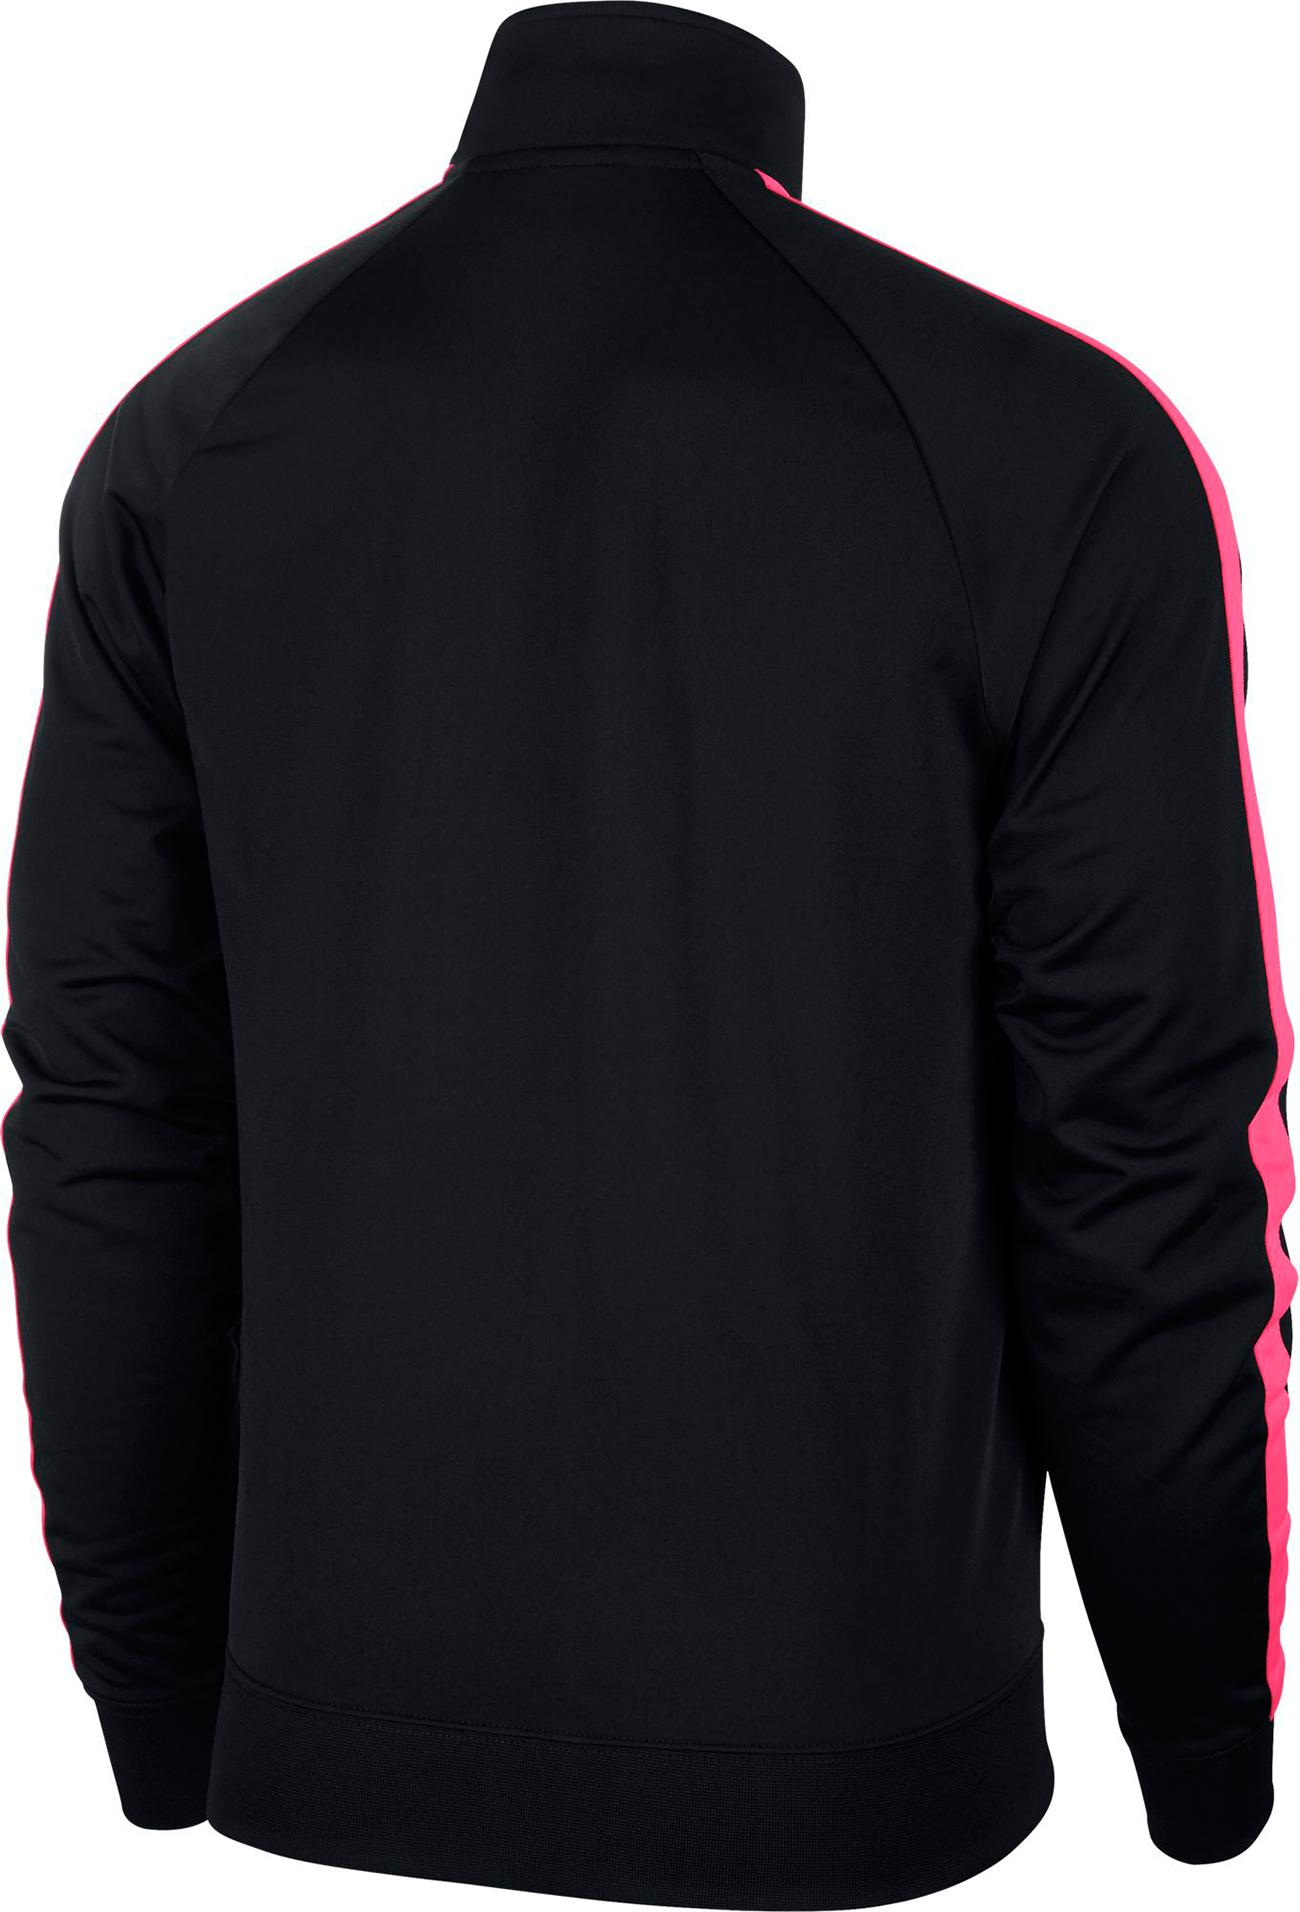 psg trainingsjacke pink coupon code for